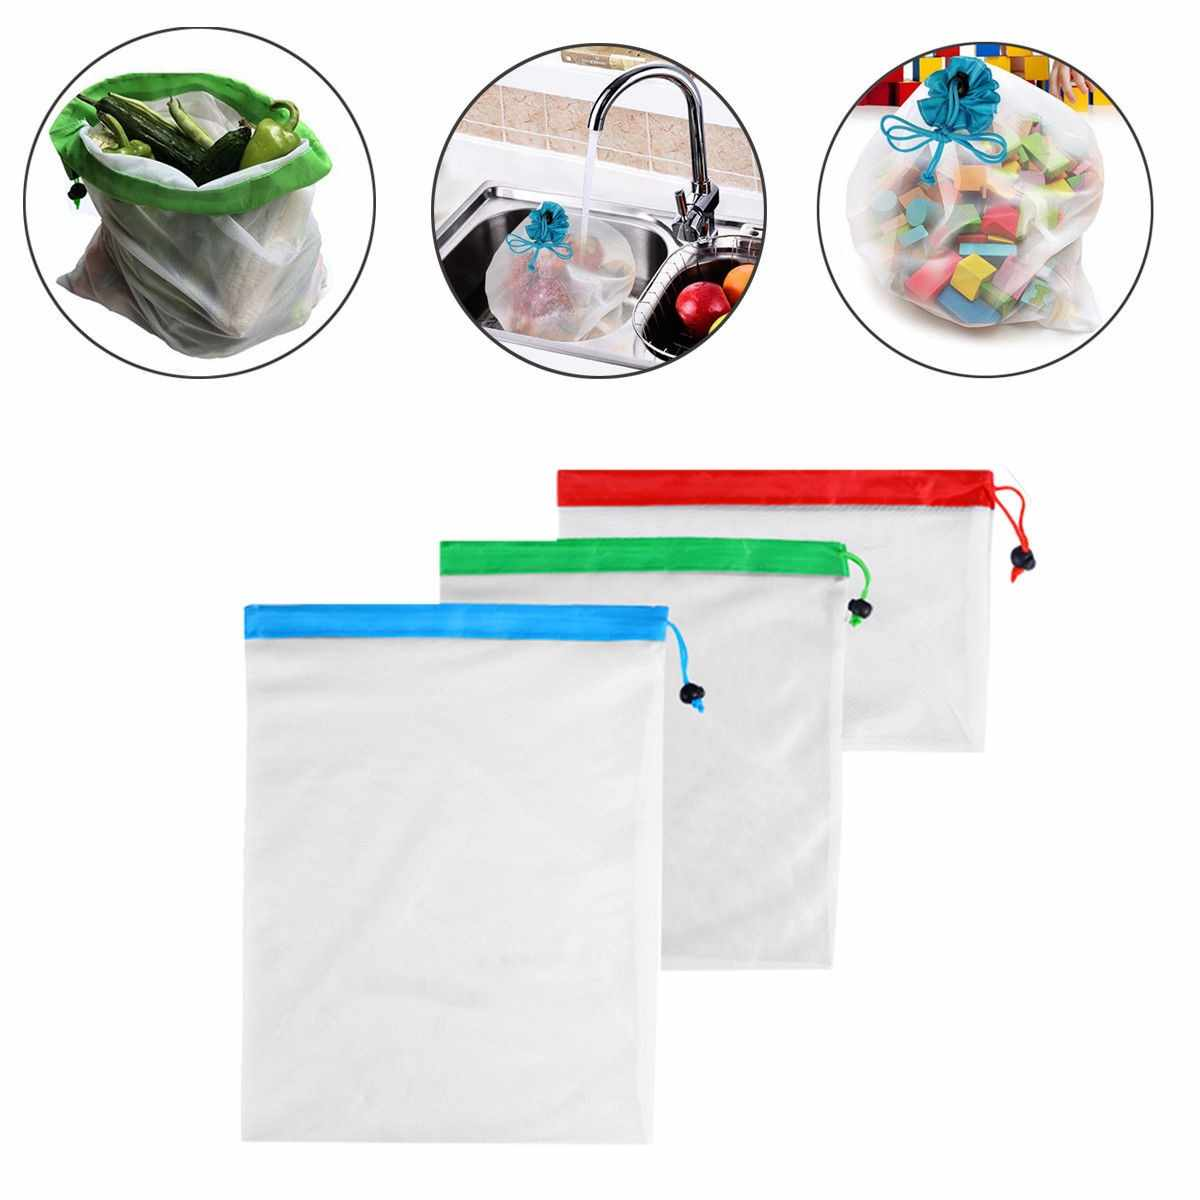 Reusable Mesh  Produce Bag Eco Friendly Bags For Grocery Shopping Fruit Vegetable Toys Storage Bags